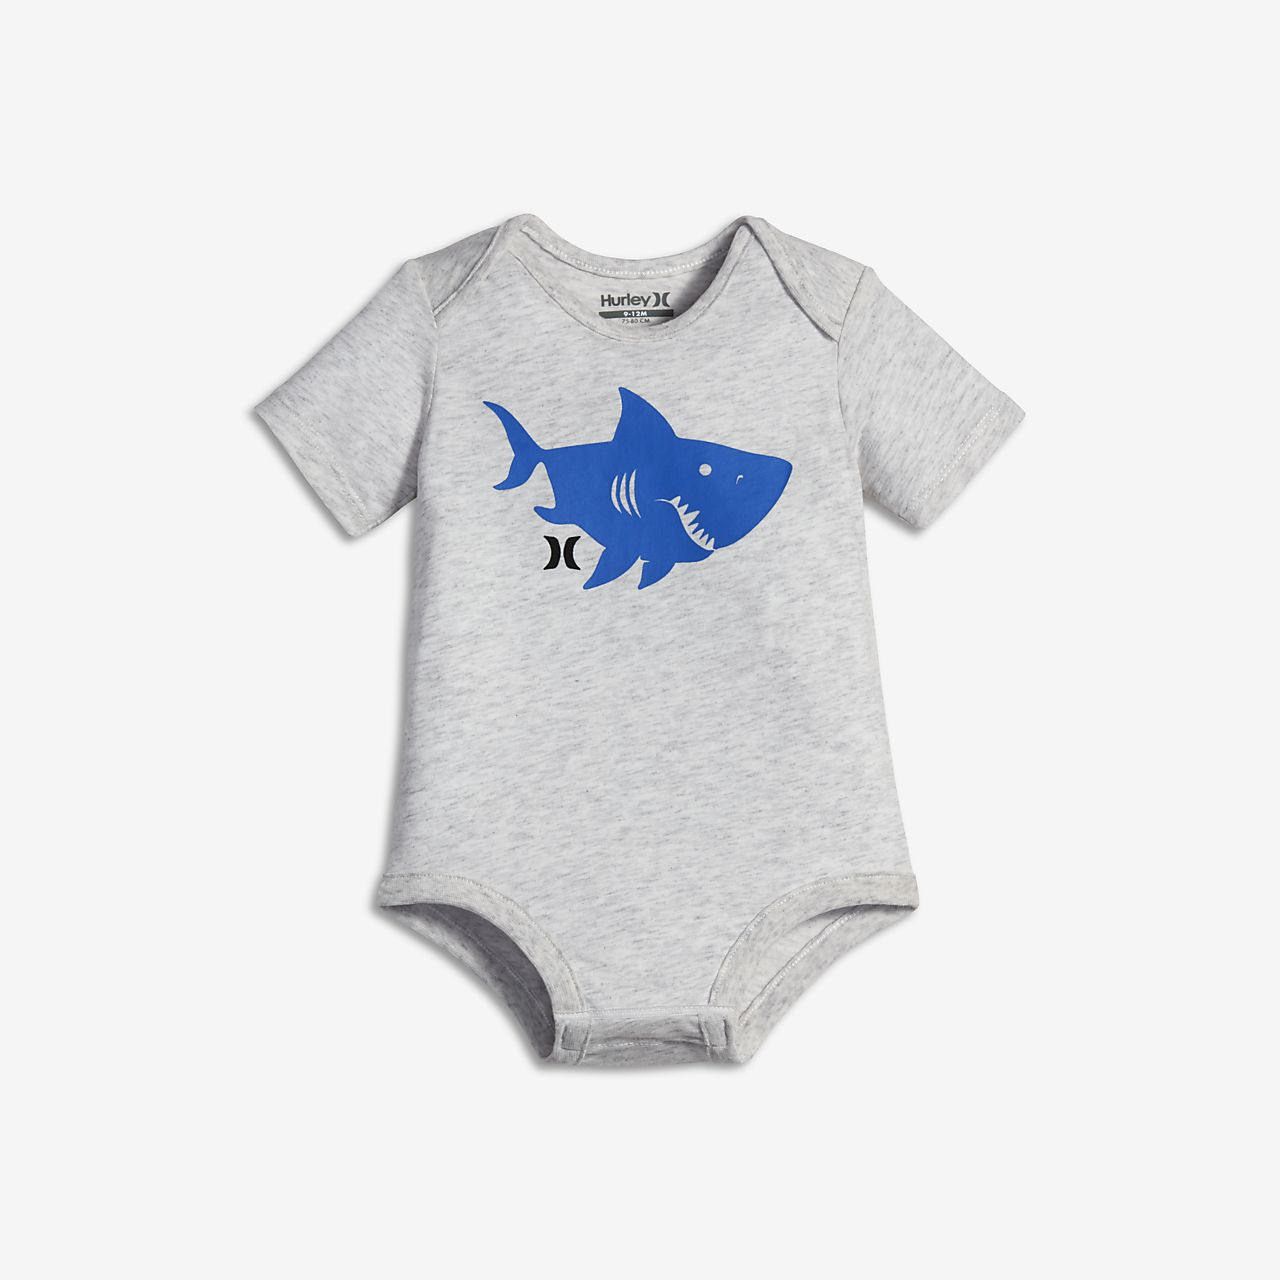 ... Hurley Sharky Silo Creeper Infant (Boys') Romper